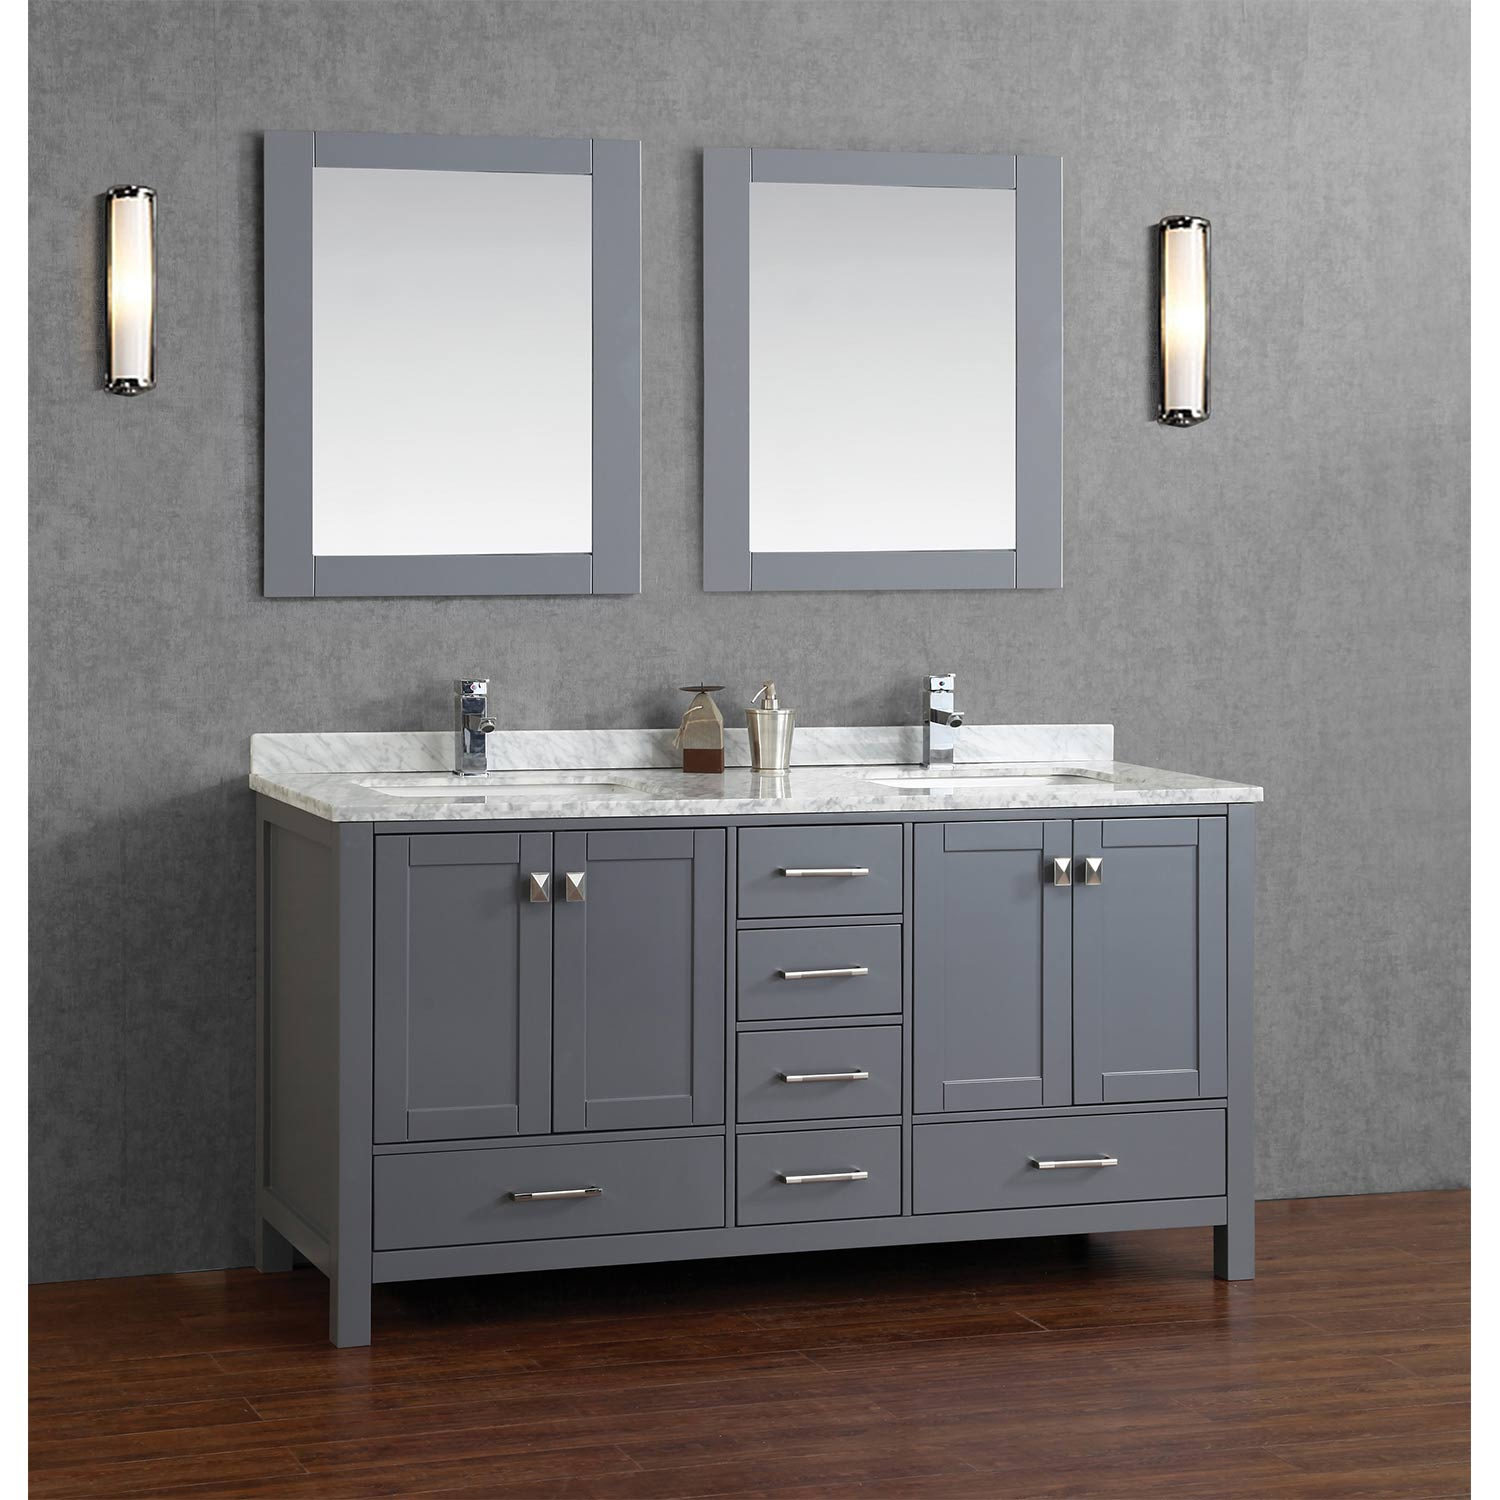 products white newcastle techstone top in sink vanity bathroom gray and set ceramic empire kit solid with